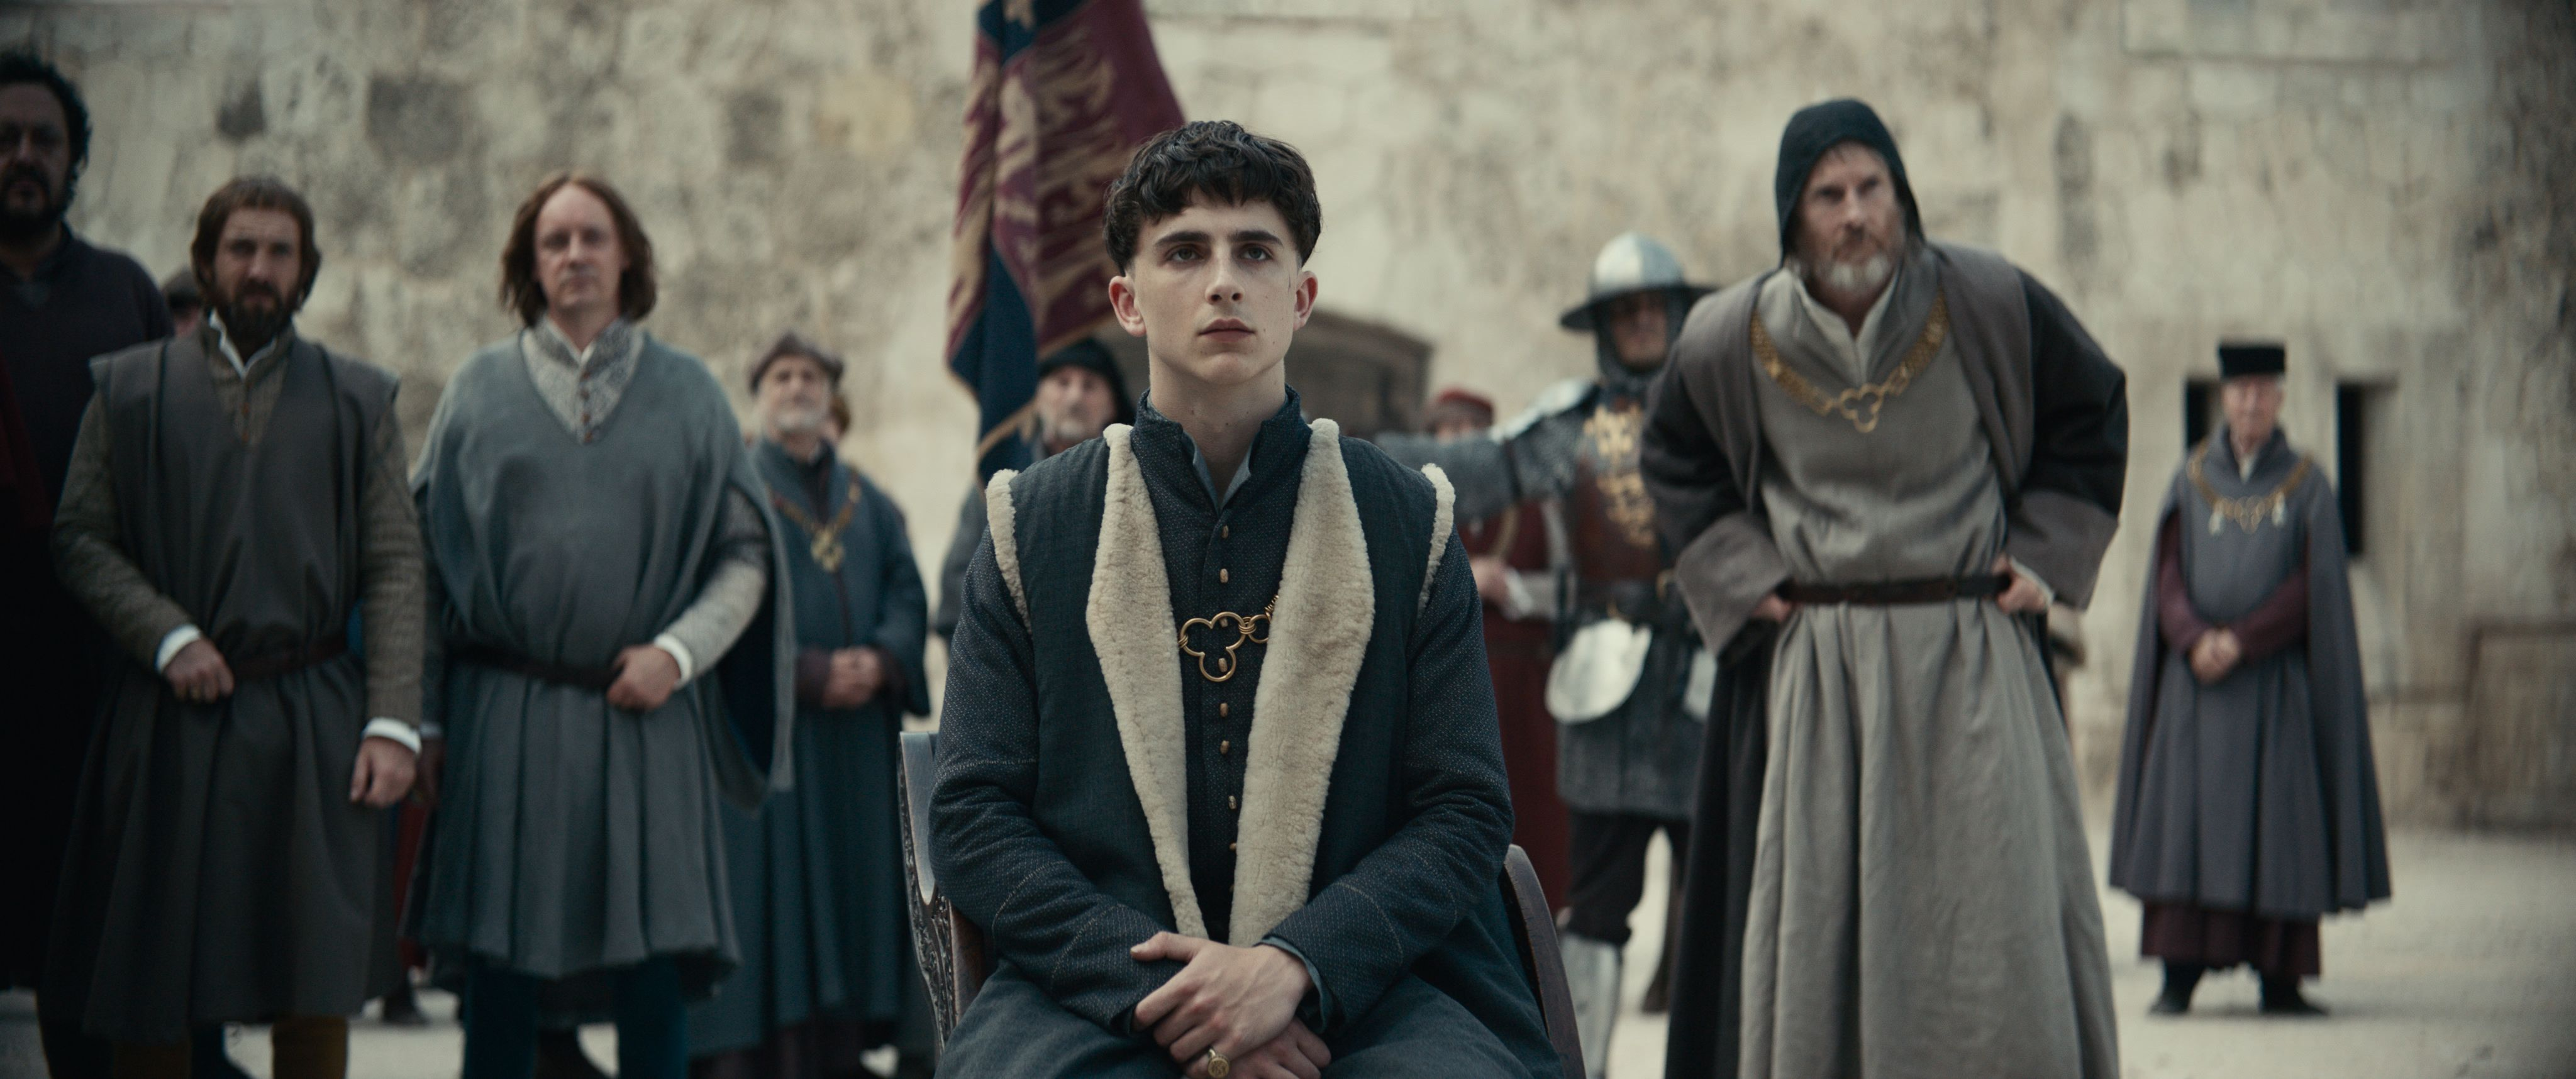 The King Trailer Shows Timothée Chalamet In Full Game Of Thrones Mode